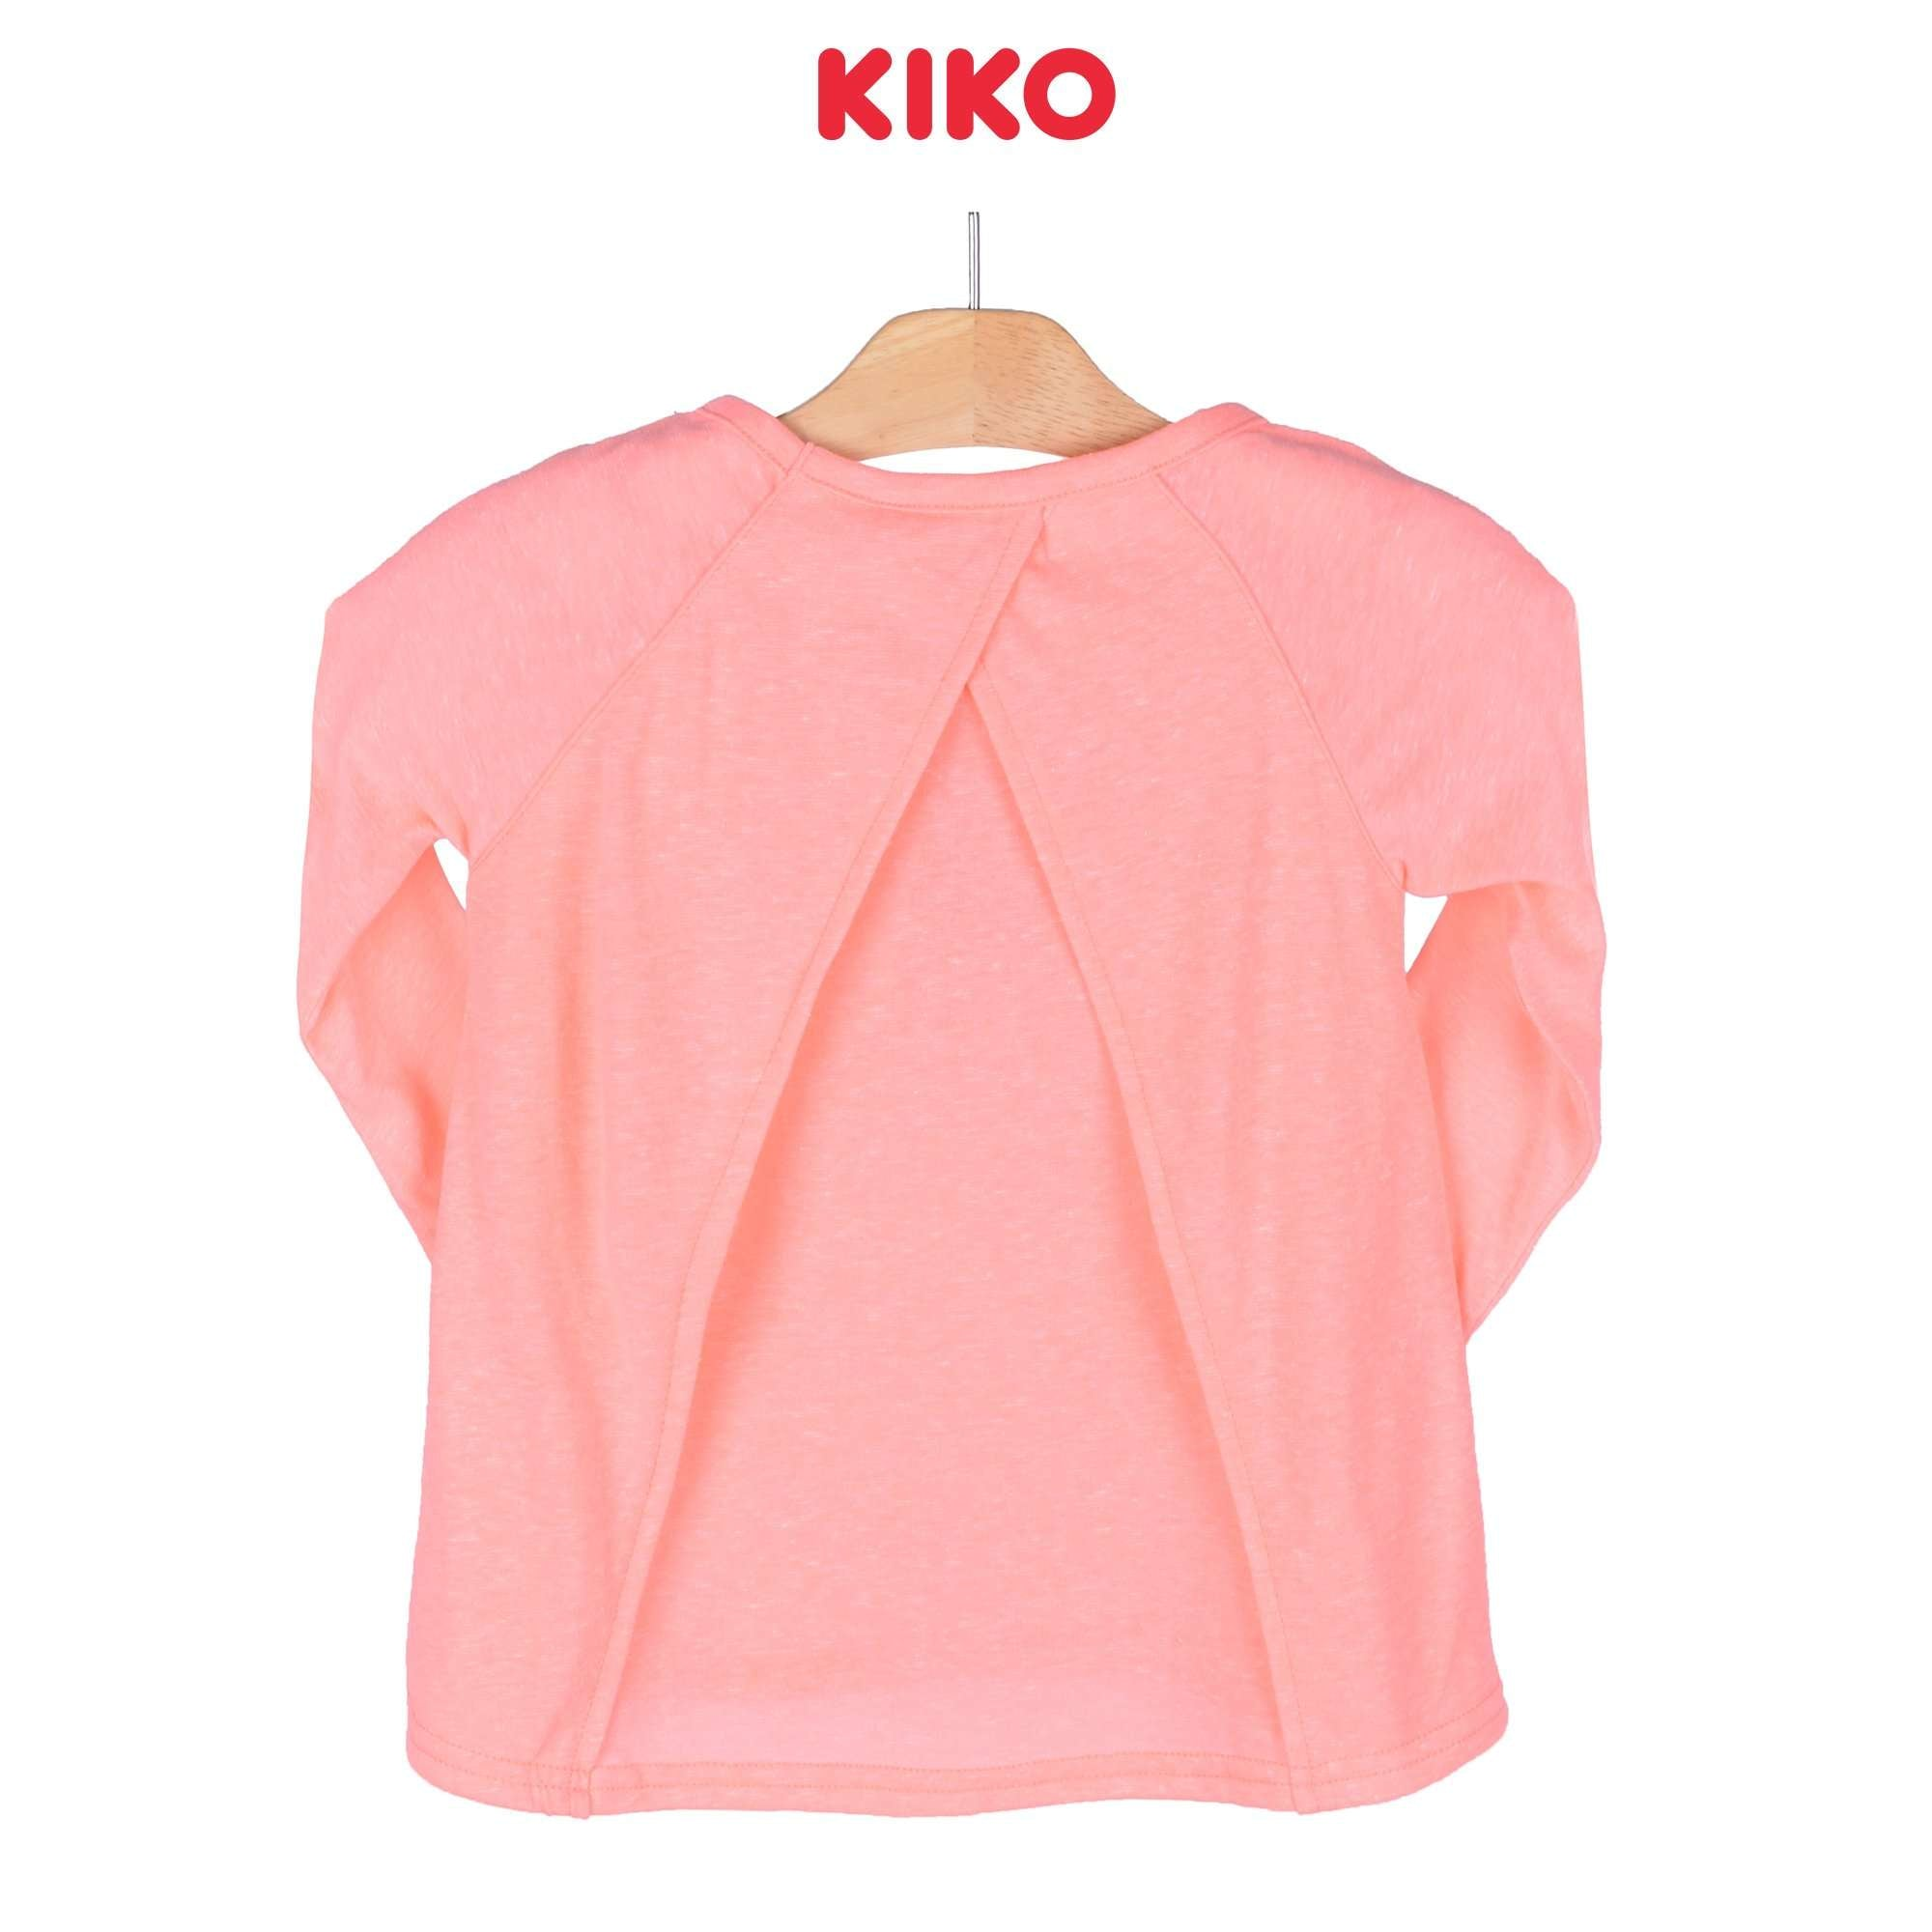 KIKO Girl Short Sleeve Tee 135065-131 : Buy KIKO online at CMG.MY